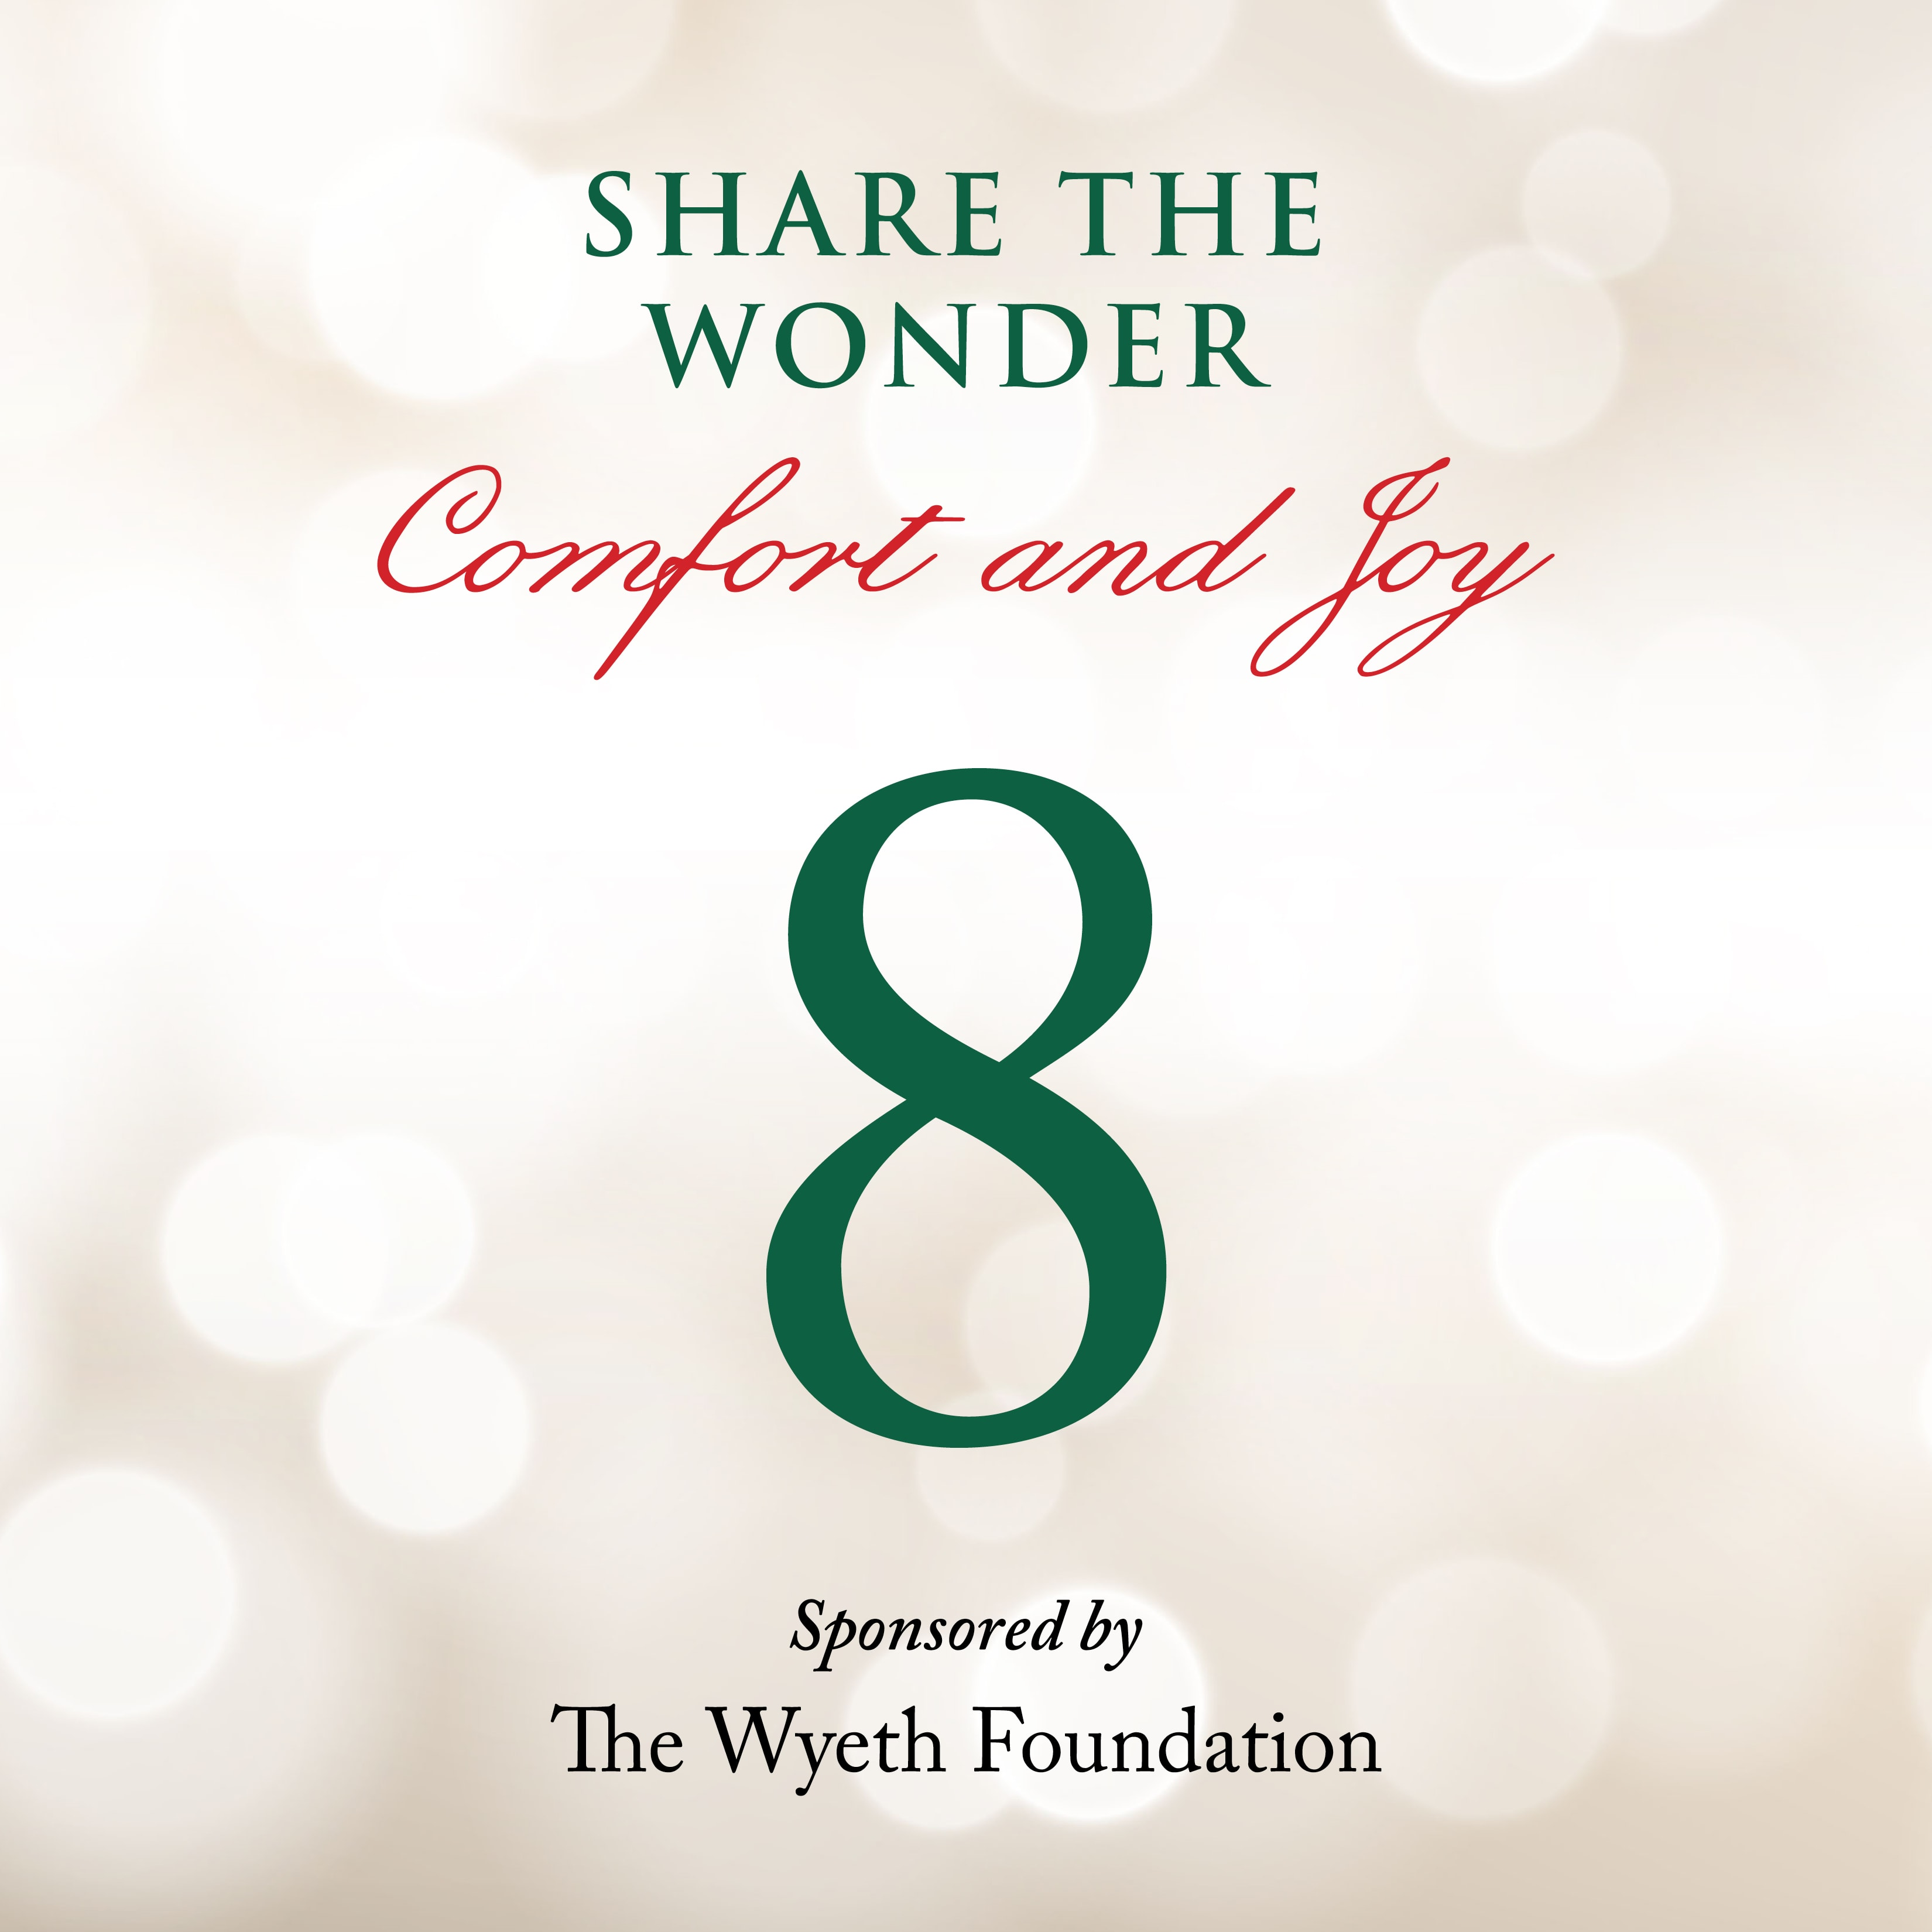 Day 8 of Share the Wonder: December 5